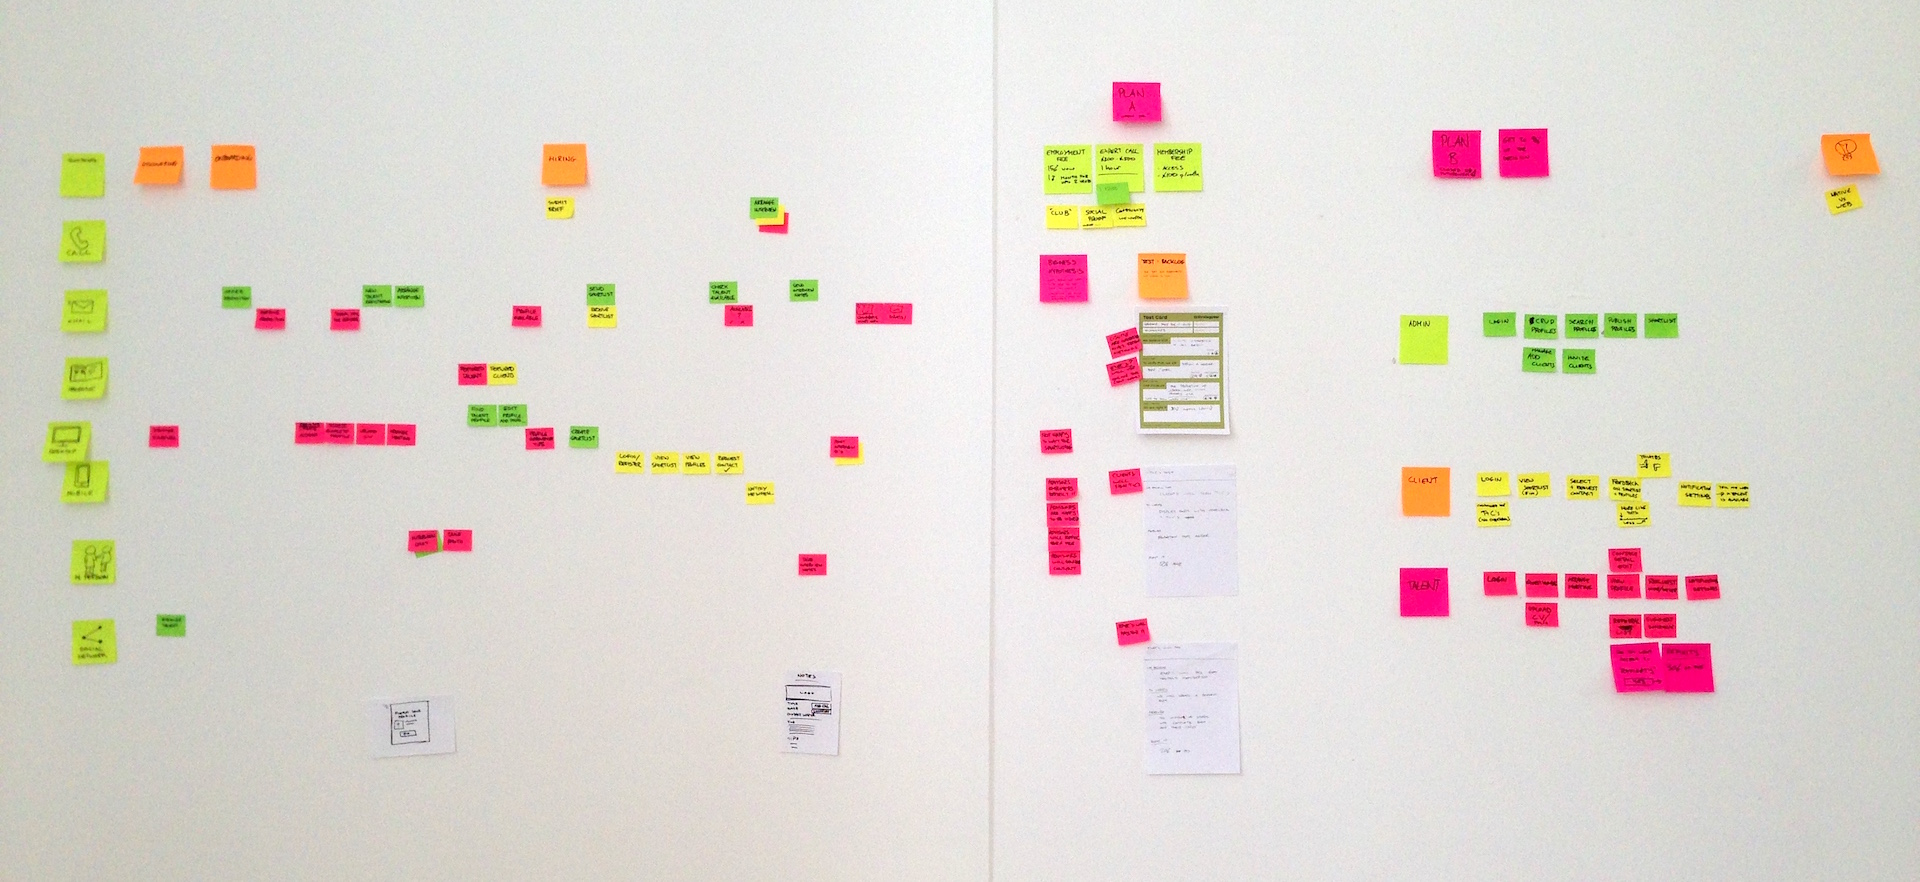 Mapping the customer journey